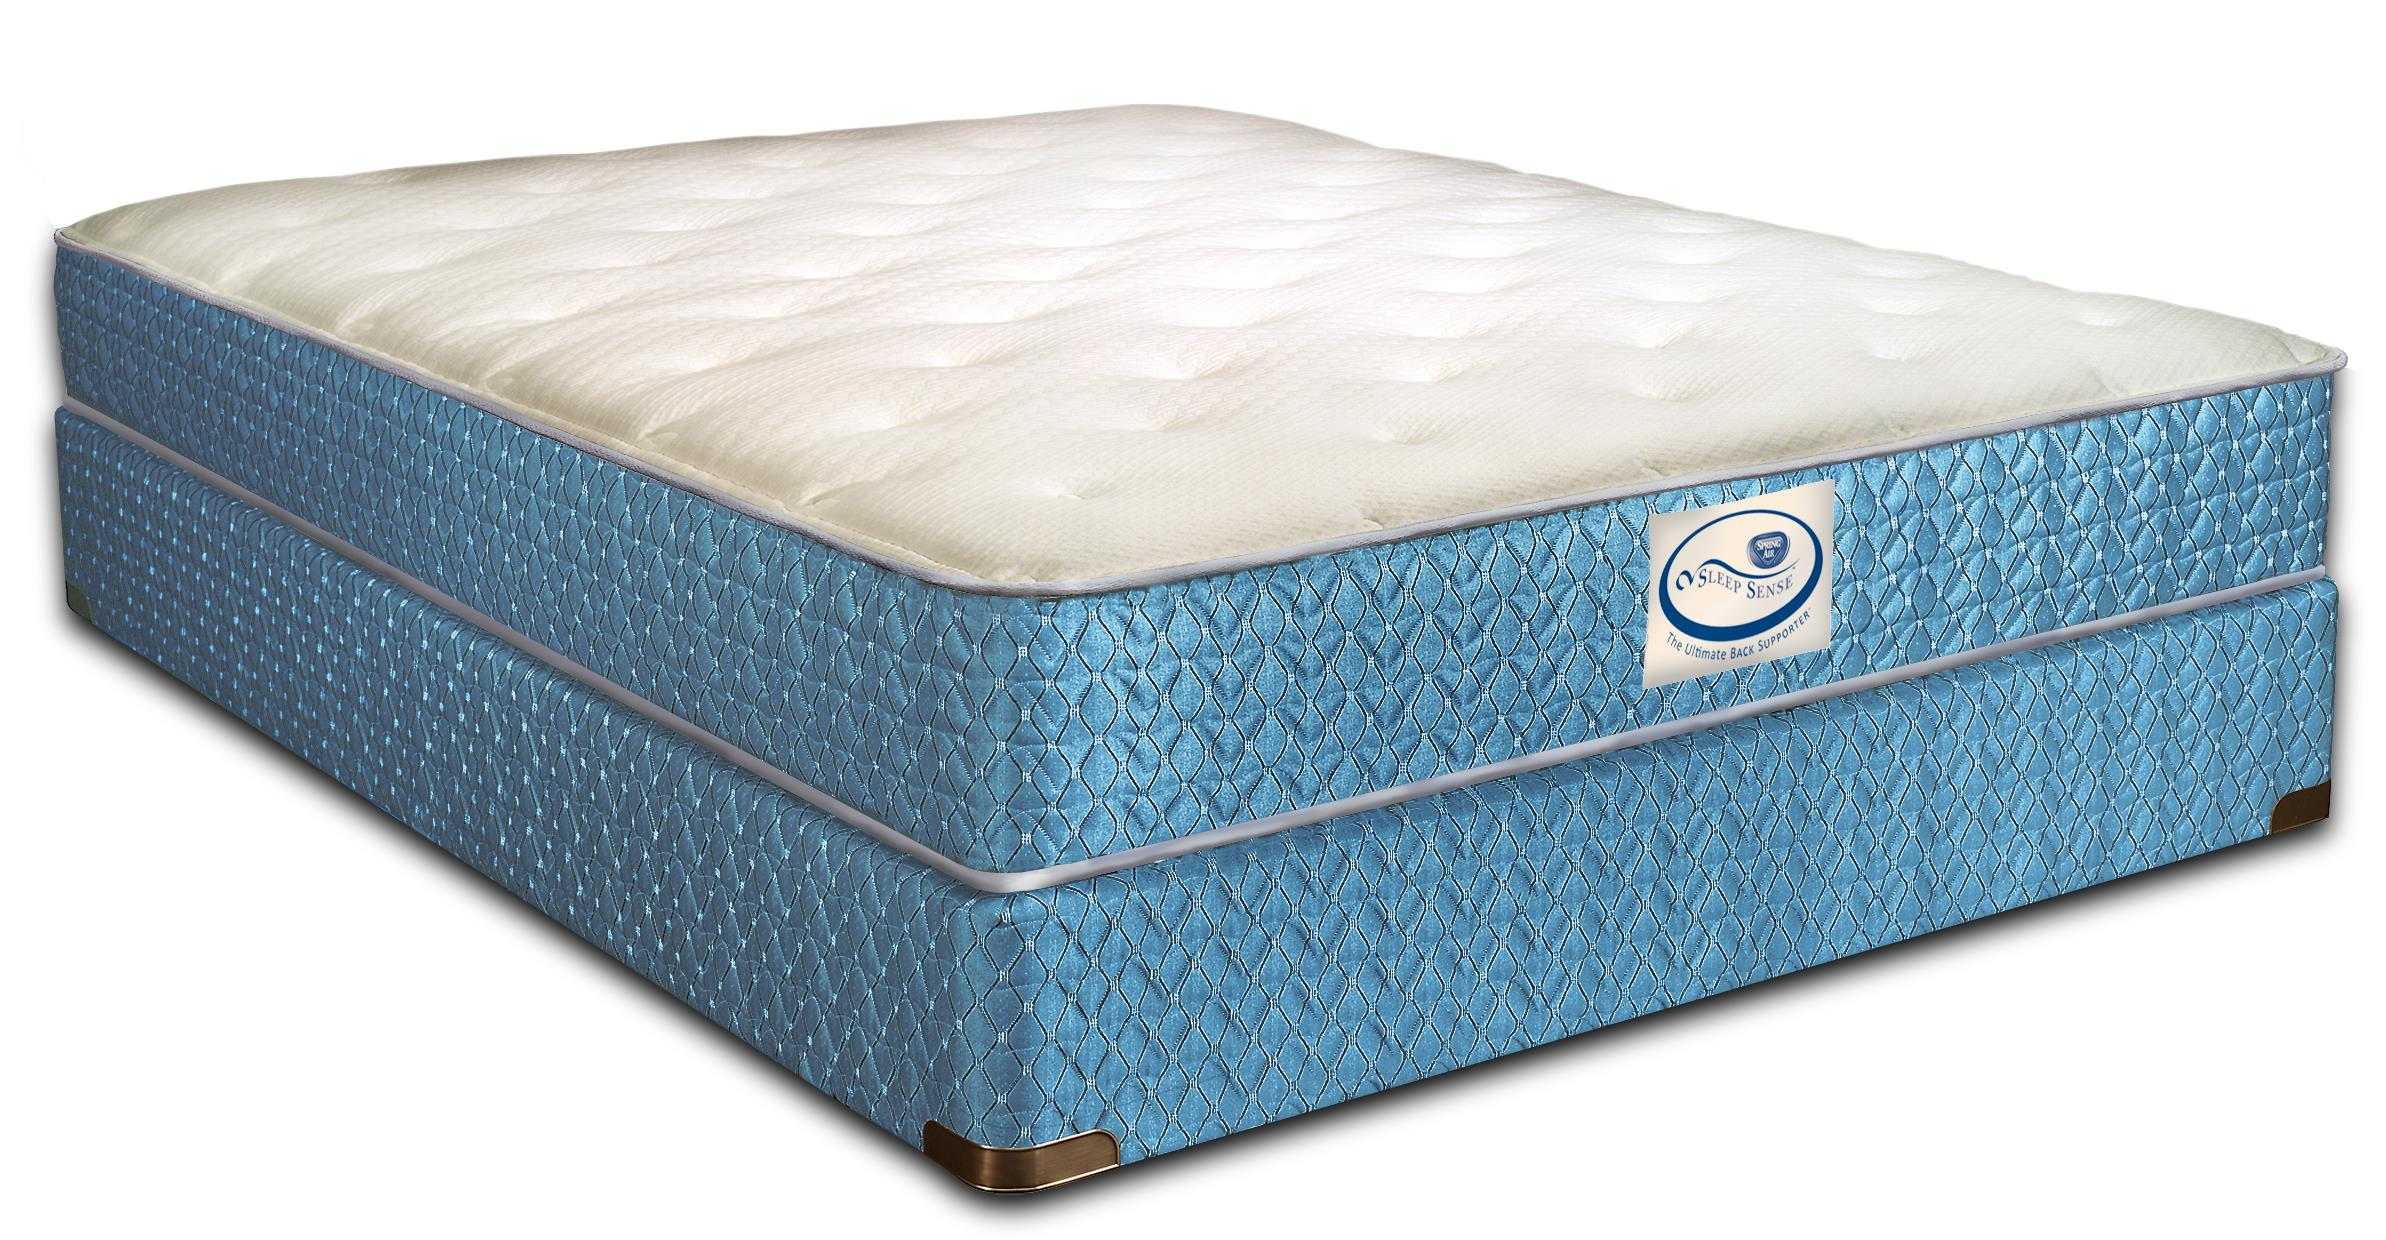 Sleep Sense King Cushion Plush Mattress Set by Spring Air at Mueller Furniture